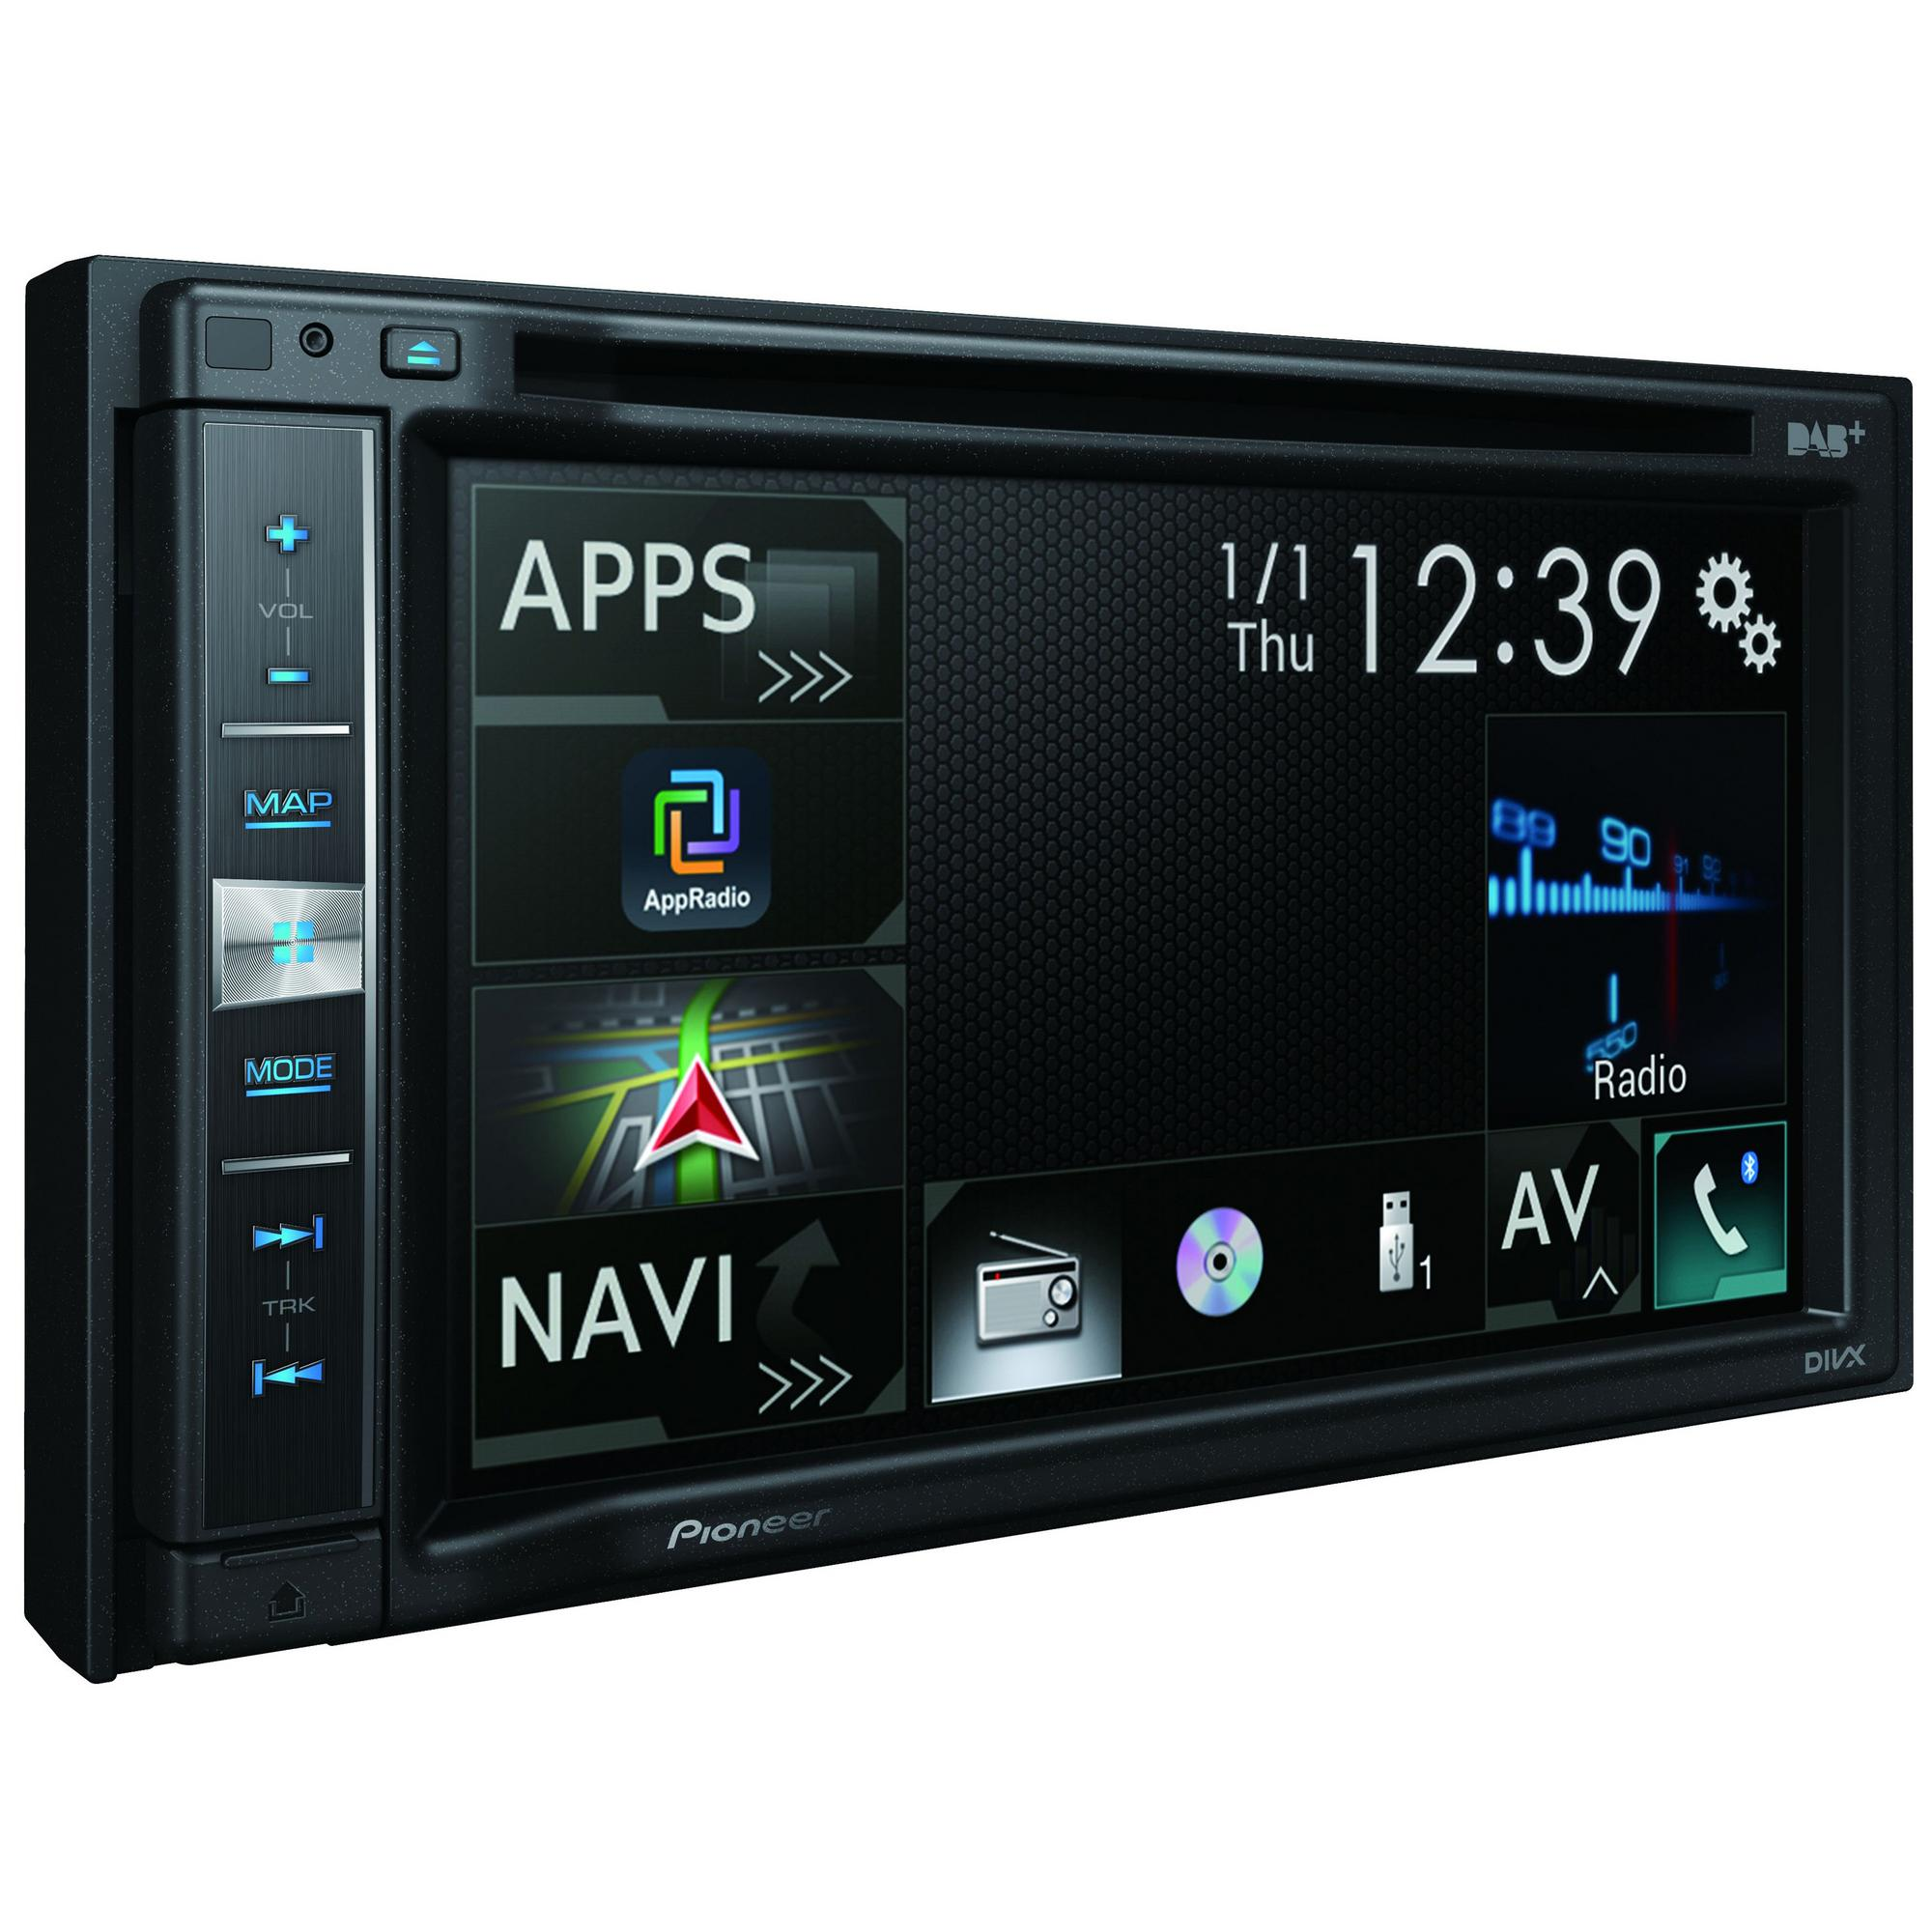 pioneer avic f980dab 6 2 touch usb dvd bluetooth. Black Bedroom Furniture Sets. Home Design Ideas